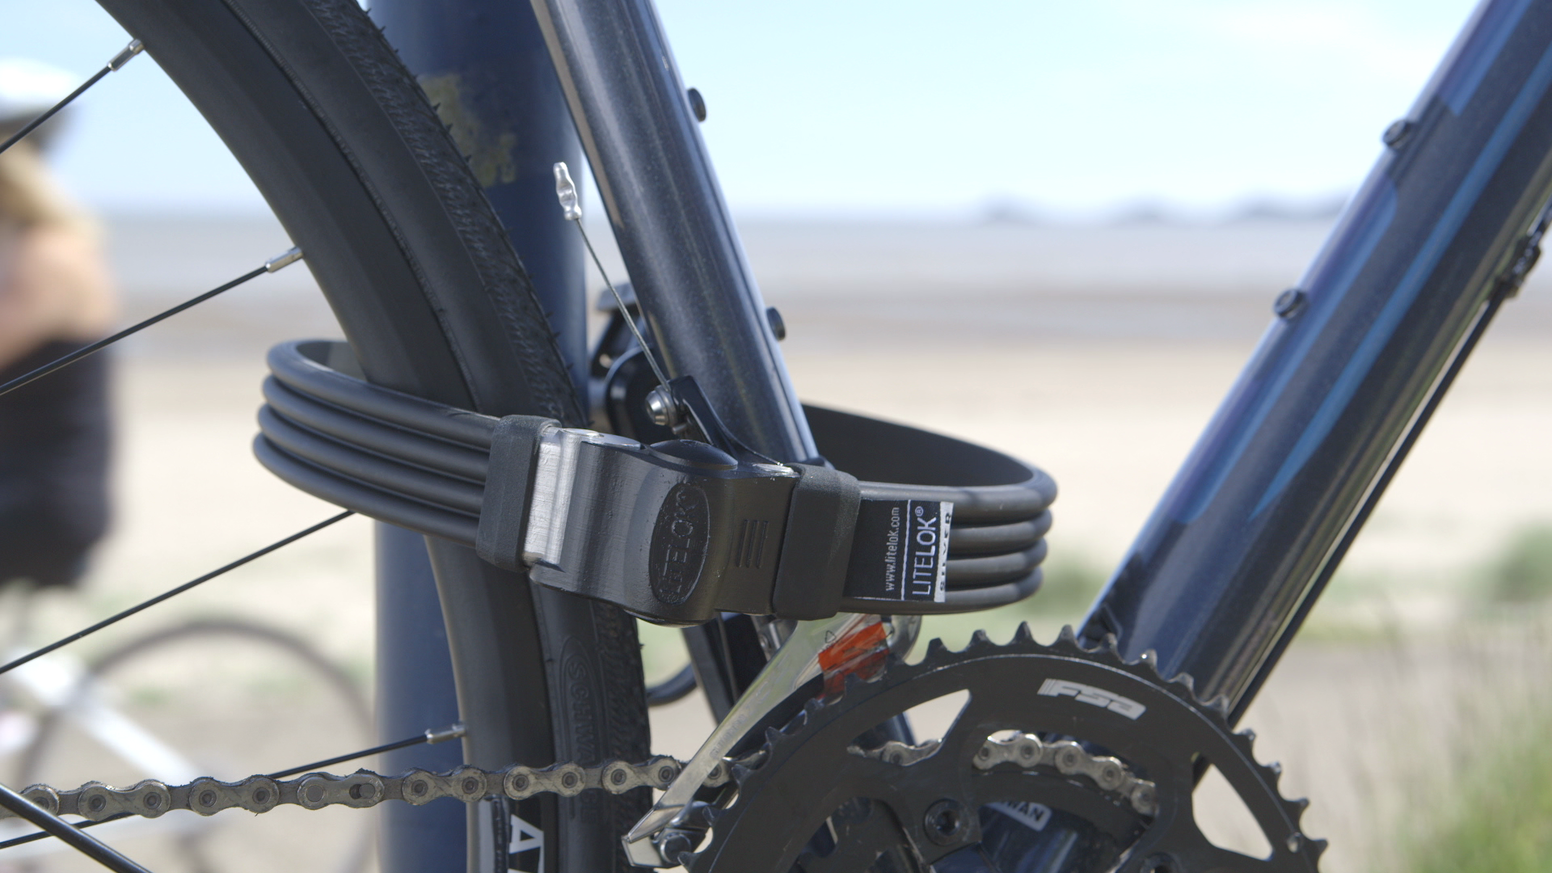 A premium, flexible, easy to use bike lock, made in Britain using cutting edge manufacturing & innovative materials